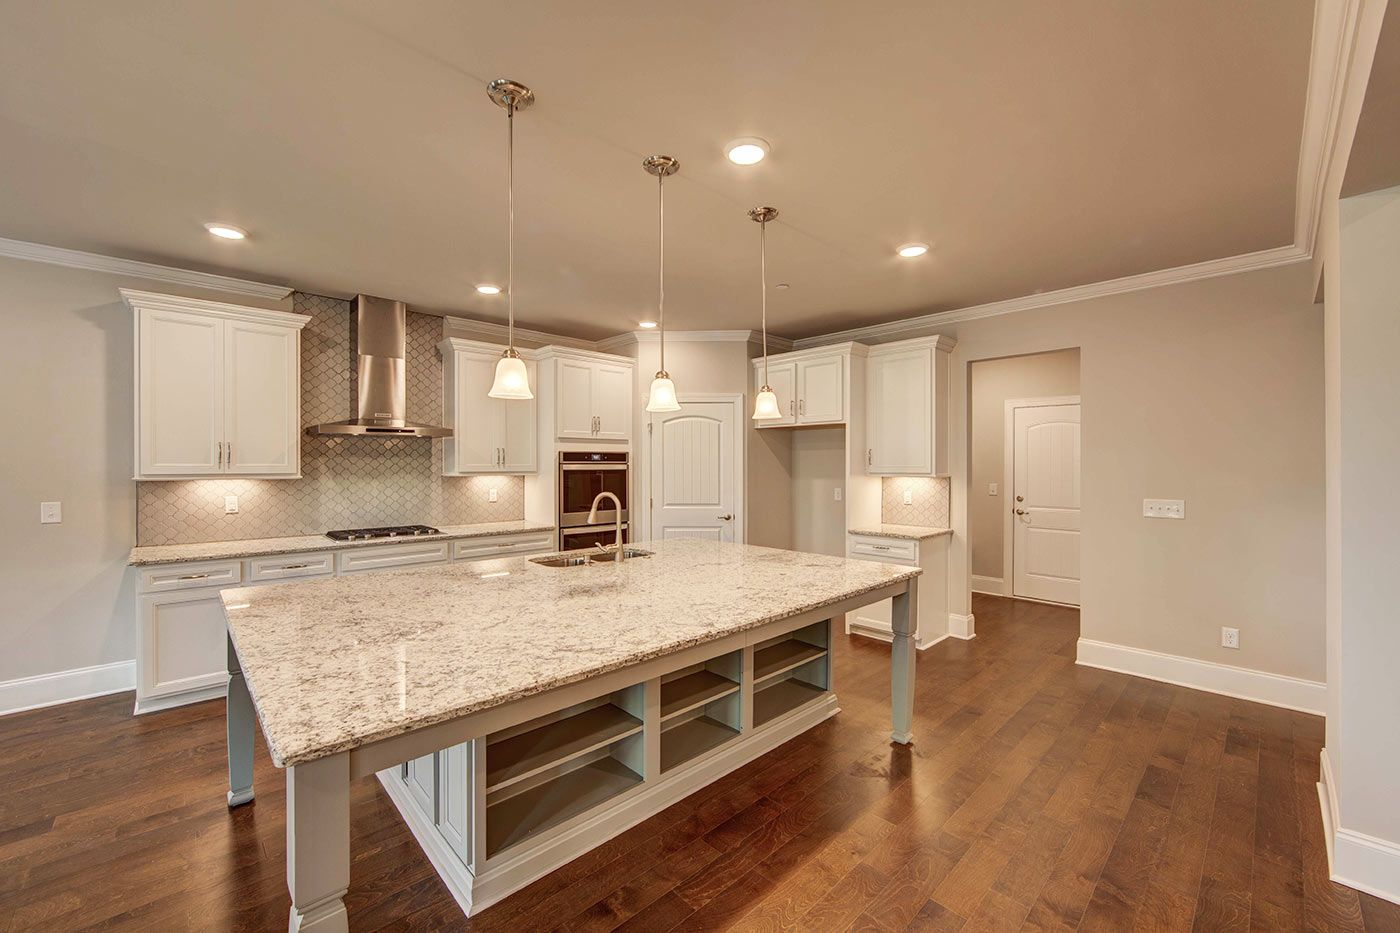 Kitchen featured in the TISDALE By D.R. Horton in Nashville, TN